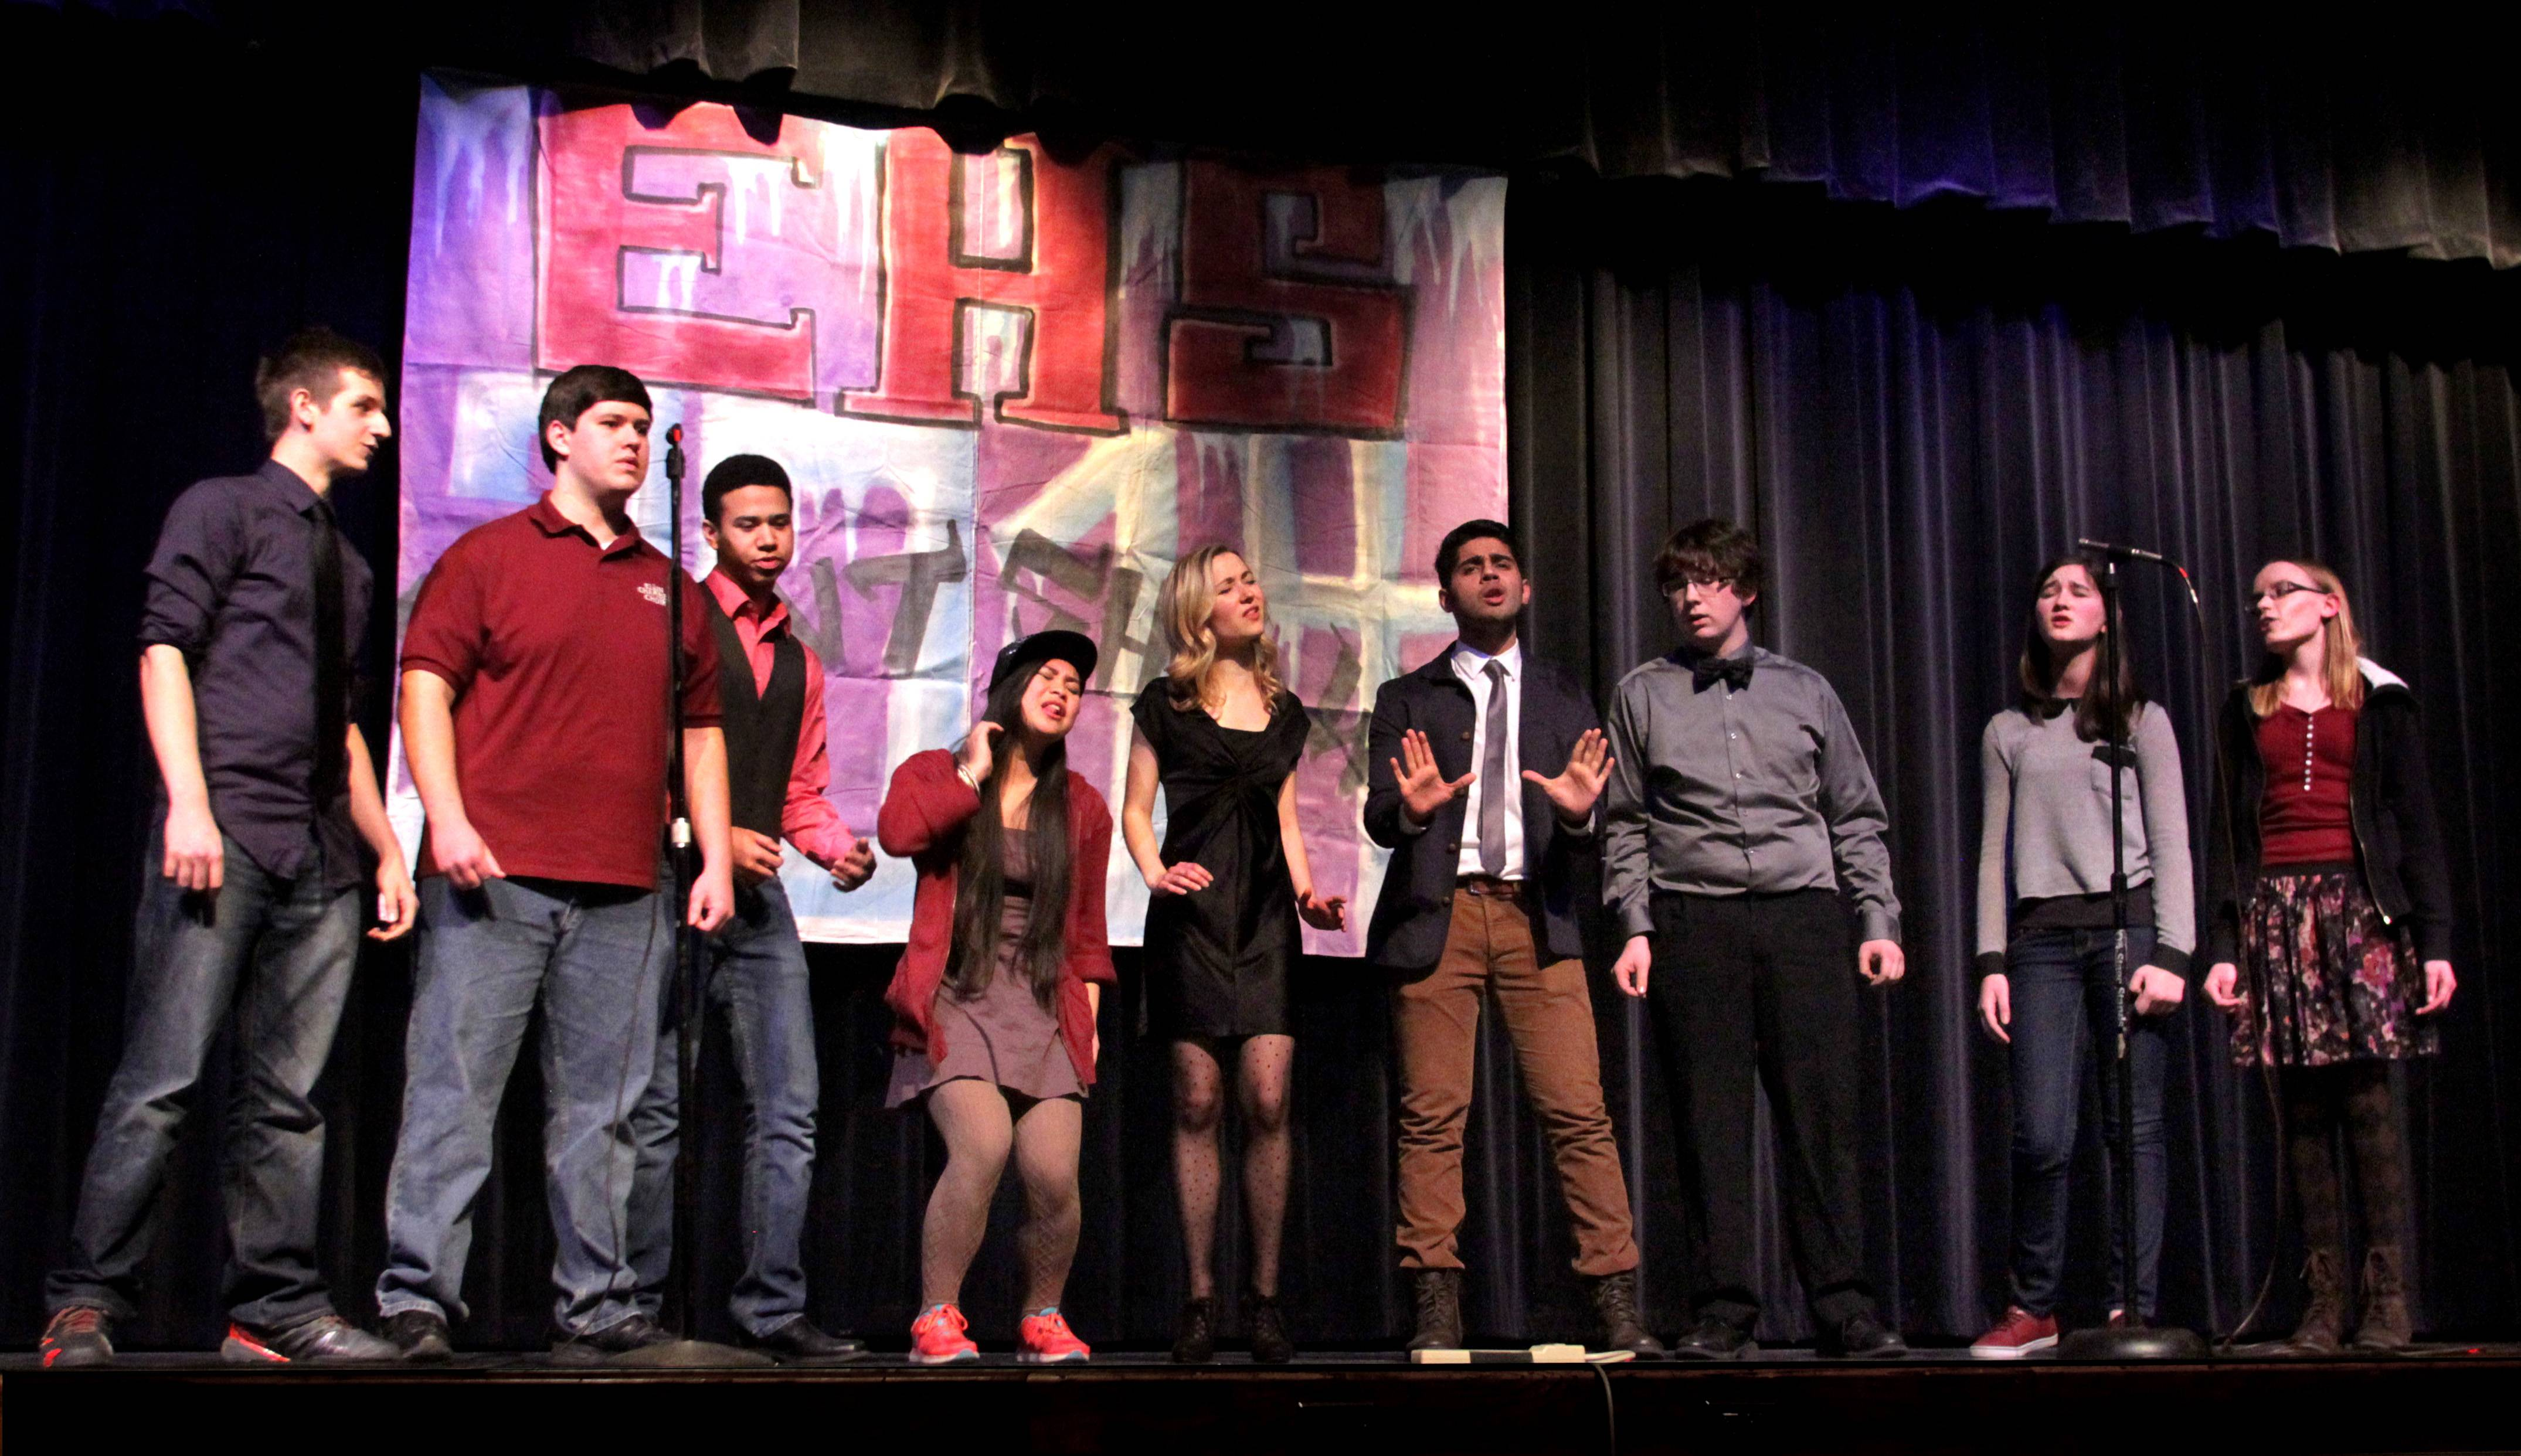 Cloud Nine is the name of an a capella group from Elgin High School that will be going to TalentFest 2014 at the Hemmens. From left: John Hoskins, Zachery Rago, Austin Bernat, Arjele Bureros, Maddie Lag, Reza Khan, Michael Kelley, Abby Lag, and Jessica Rusick.